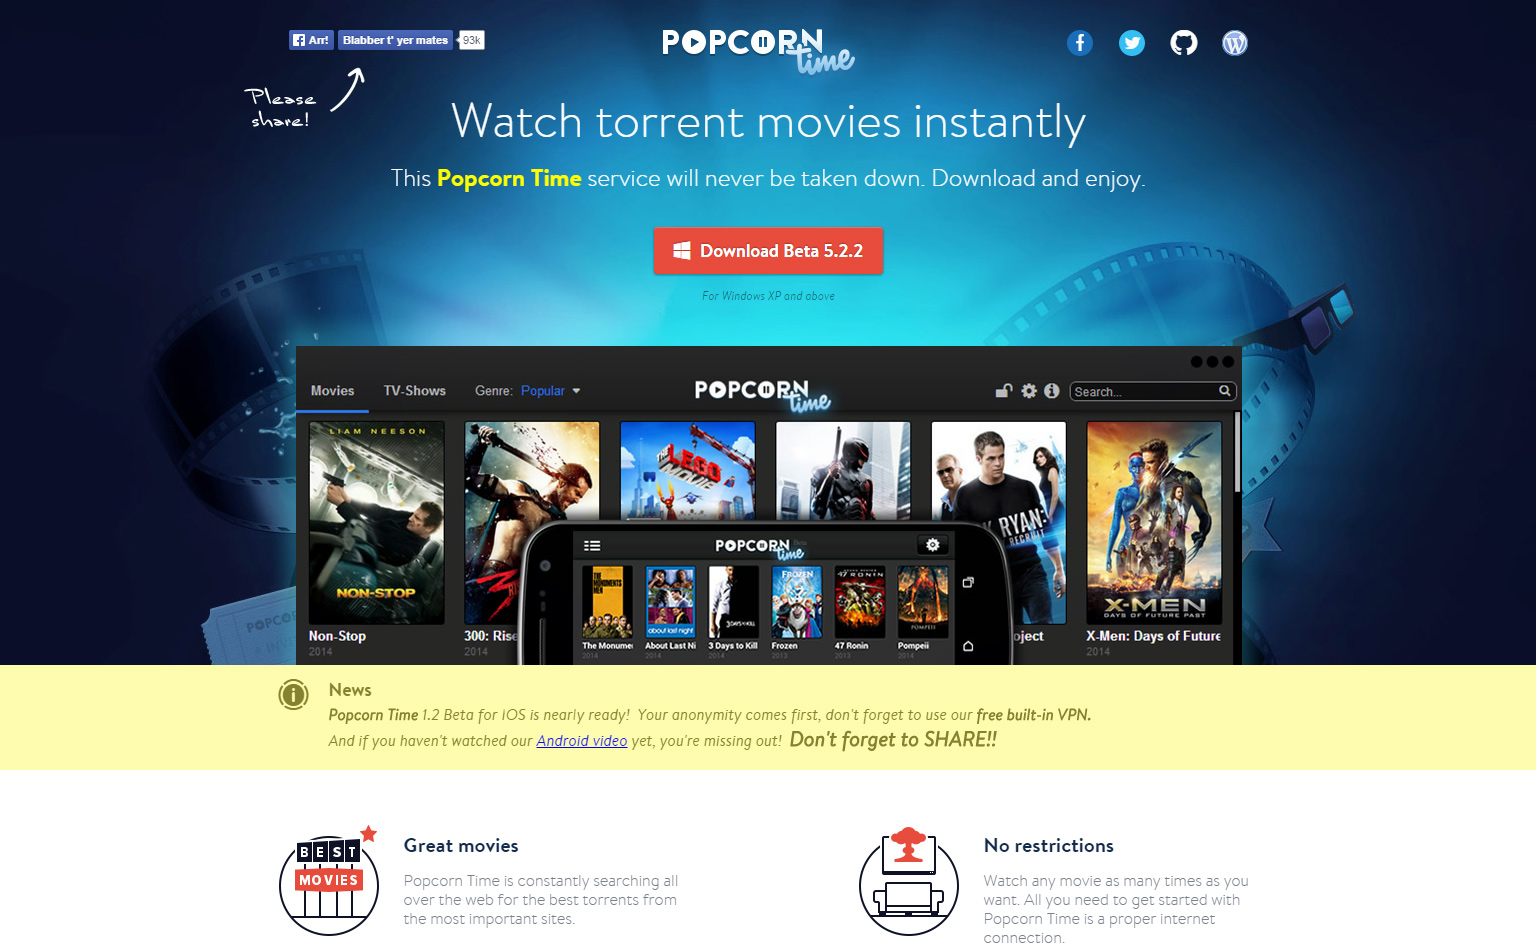 Popcorn Time is still going strong